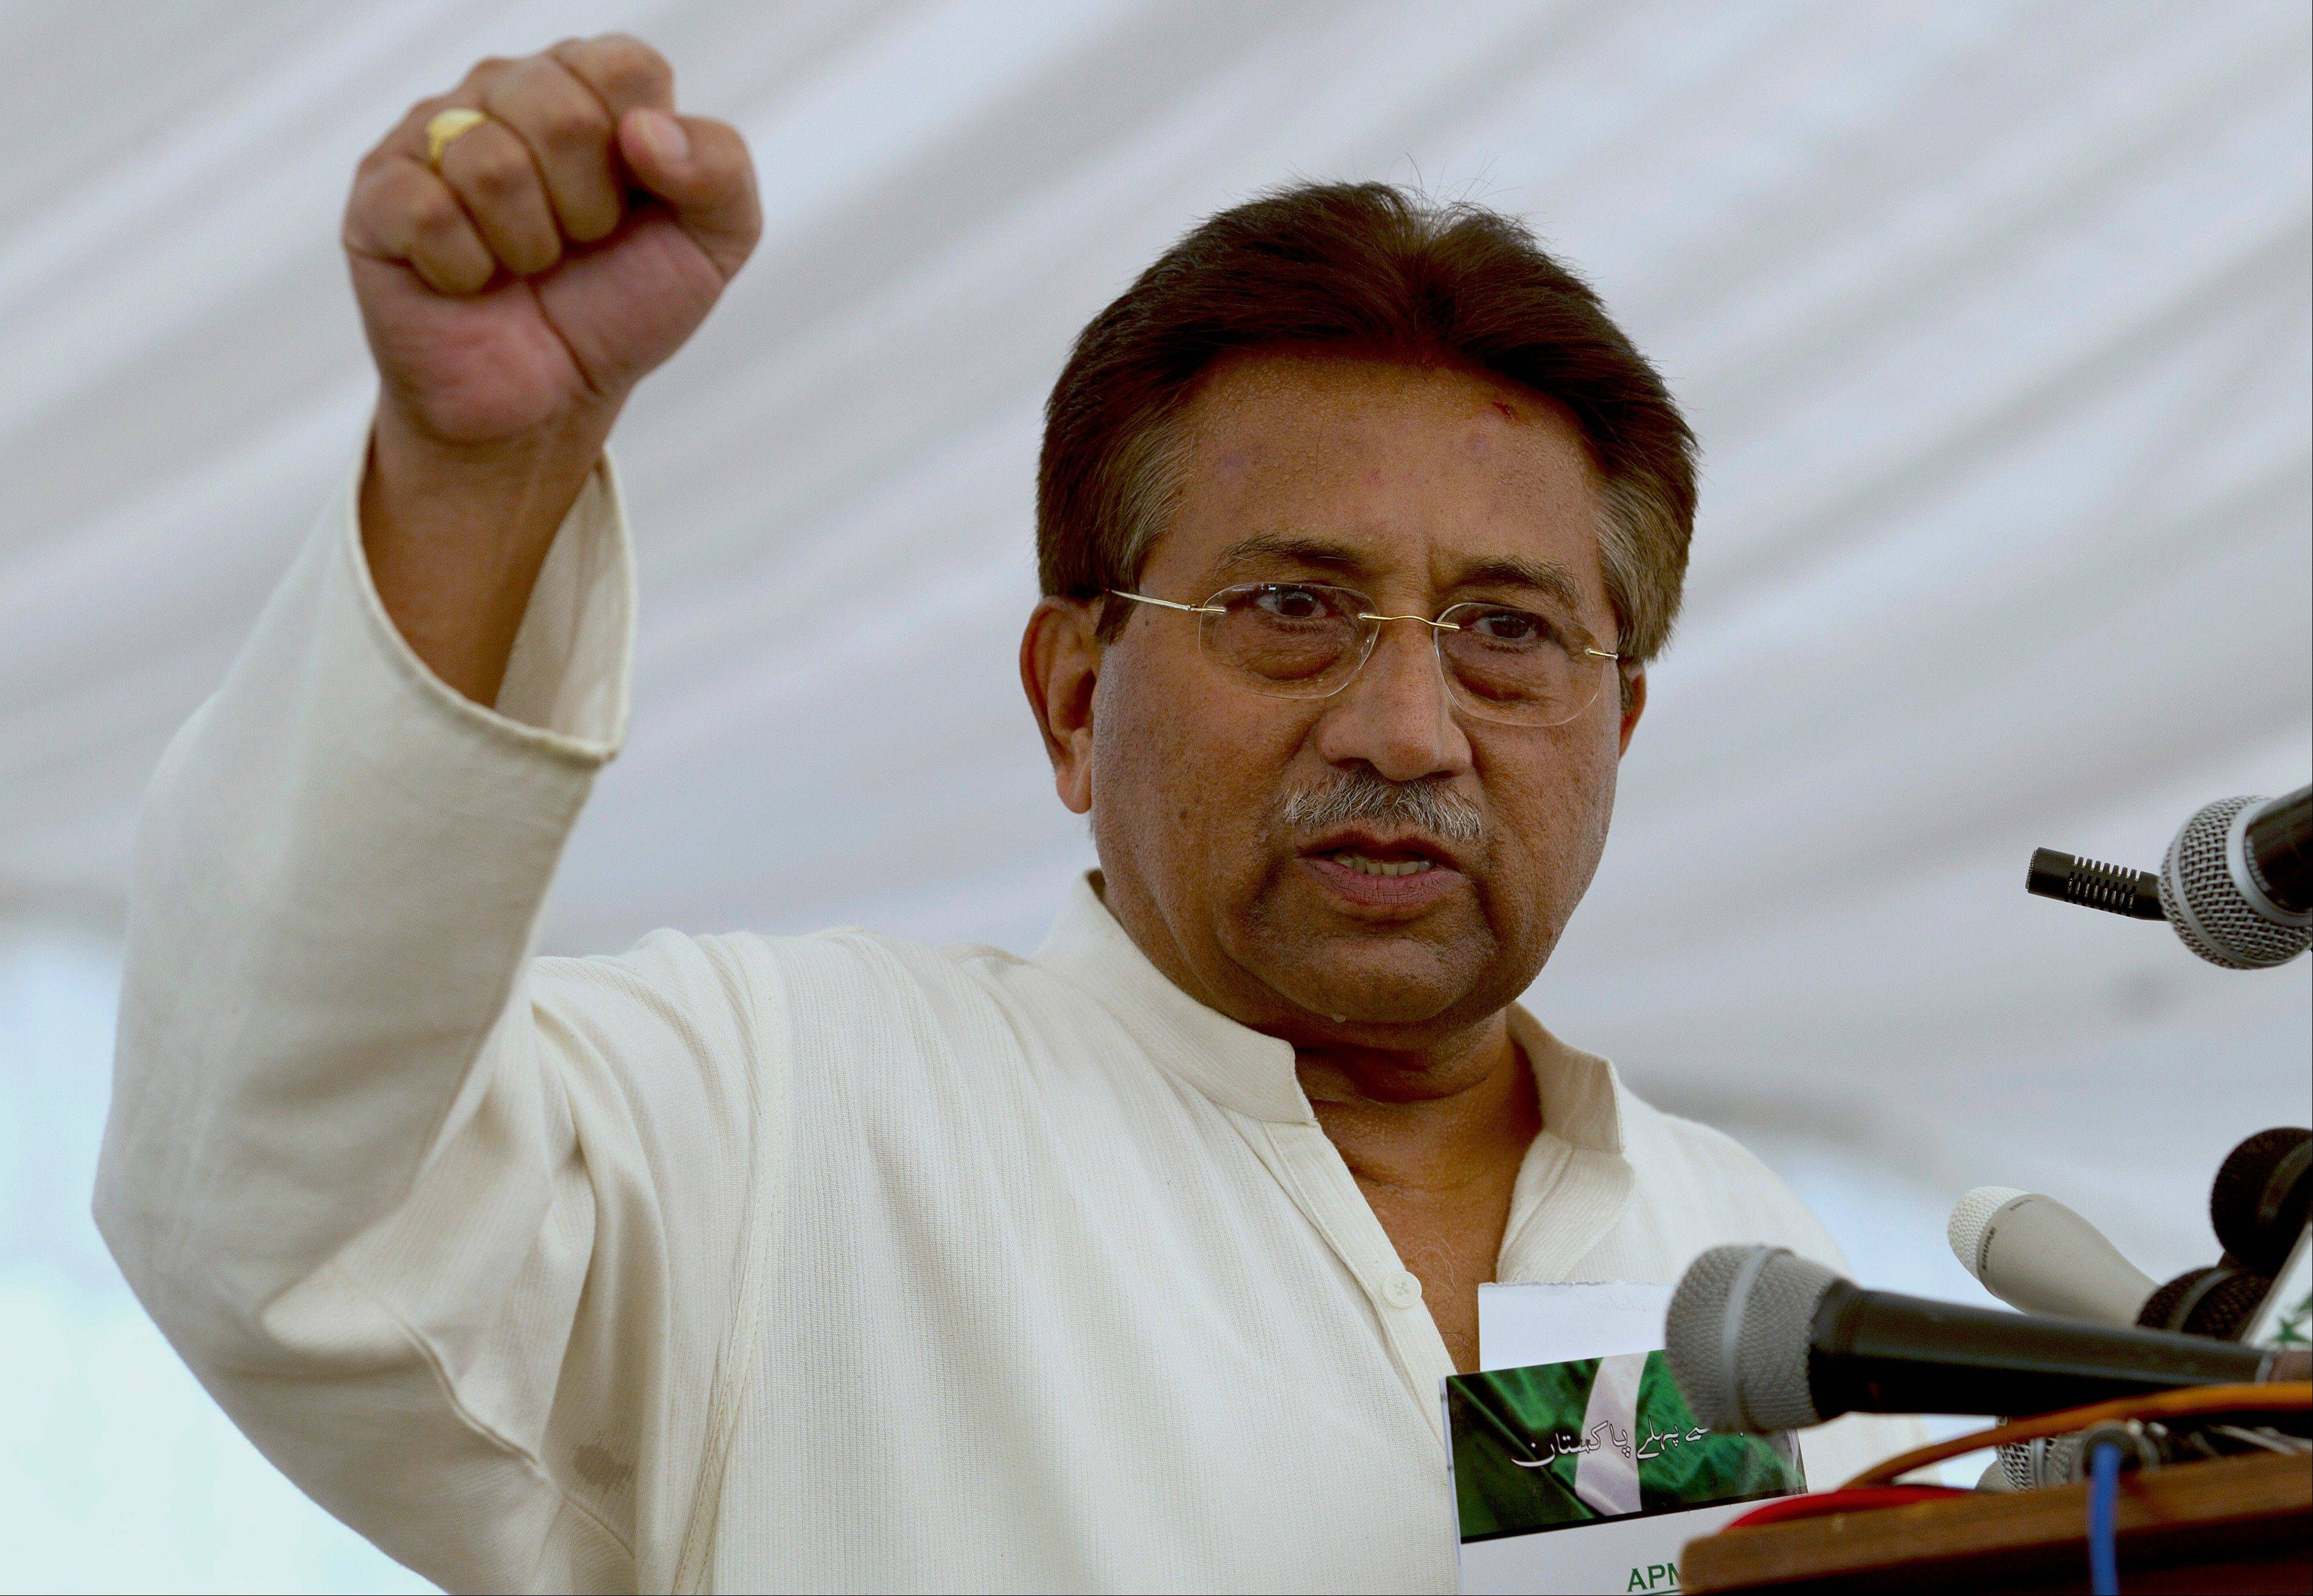 Pakistan's former President and military ruler Pervez Musharraf will face trial for treason under Article 6 of the constitution for declaring a state of emergency in 2007 and suspending the constitution.